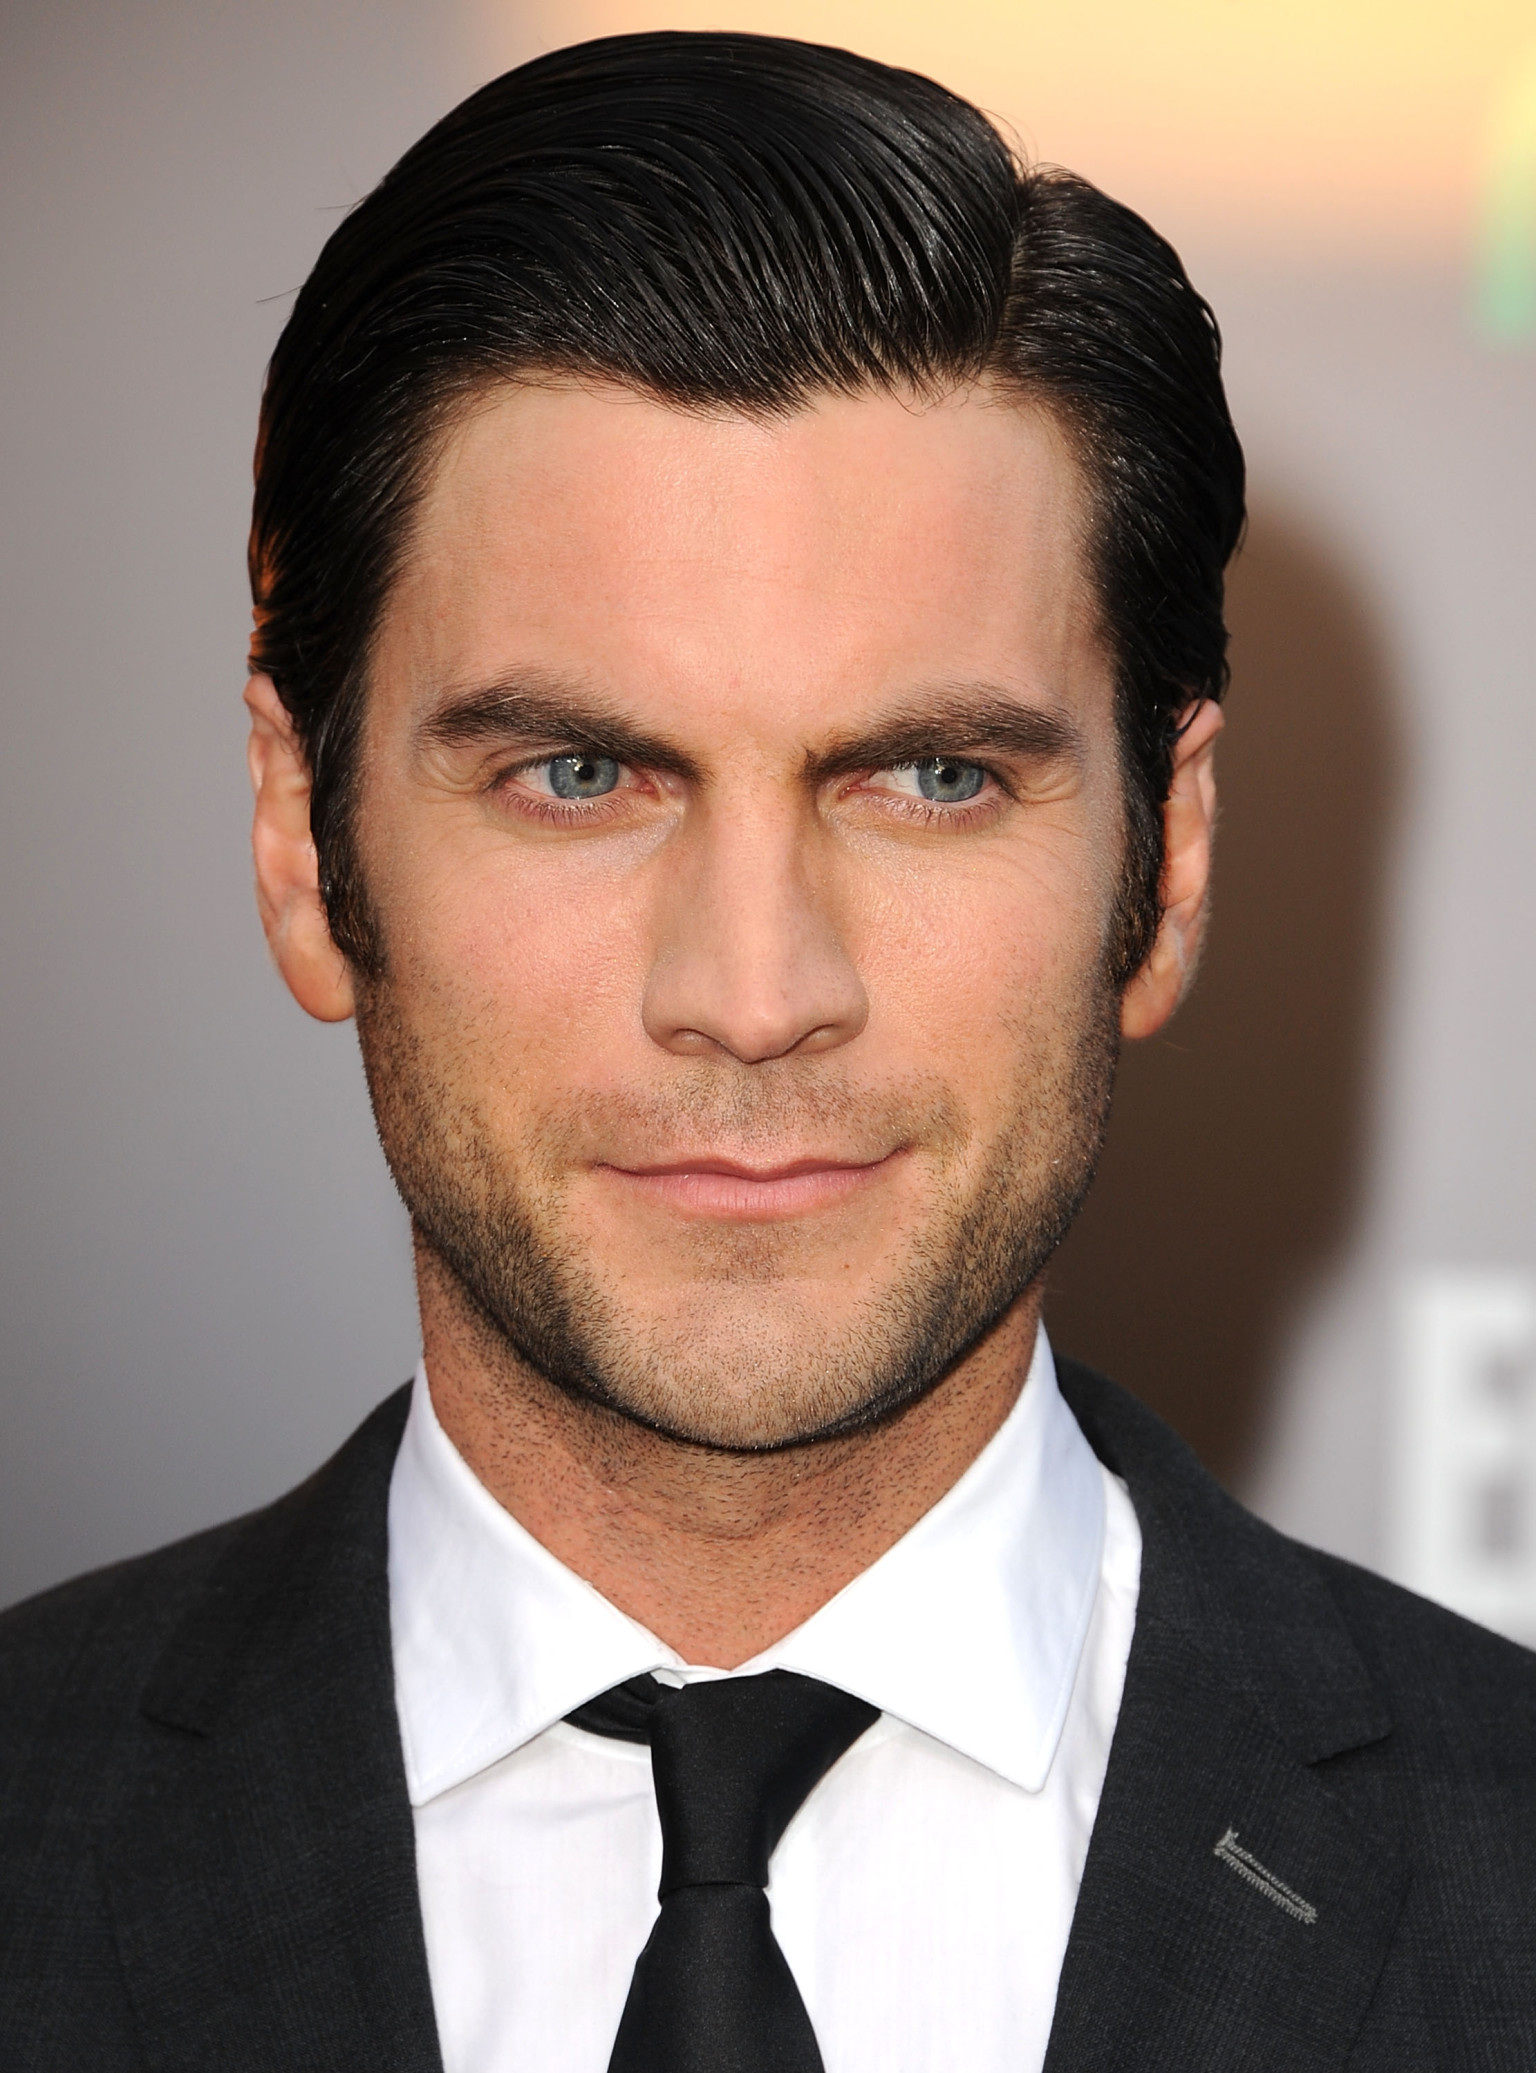 wes bentley gifwes bentley instagram, wes bentley gif, wes bentley tumblr, wes bentley american horror story, wes bentley interstellar, wes bentley 2017, wes bentley ghost rider, wes bentley height, wes bentley hunger games, wes bentley reddit, wes bentley pastor, wes bentley ahs, wes bentley wiki, wes bentley gallery, wes bentley wife, wes bentley 2016, wes bentley listal, wes bentley john lowe, wes bentley hotel, wes bentley upcoming movies